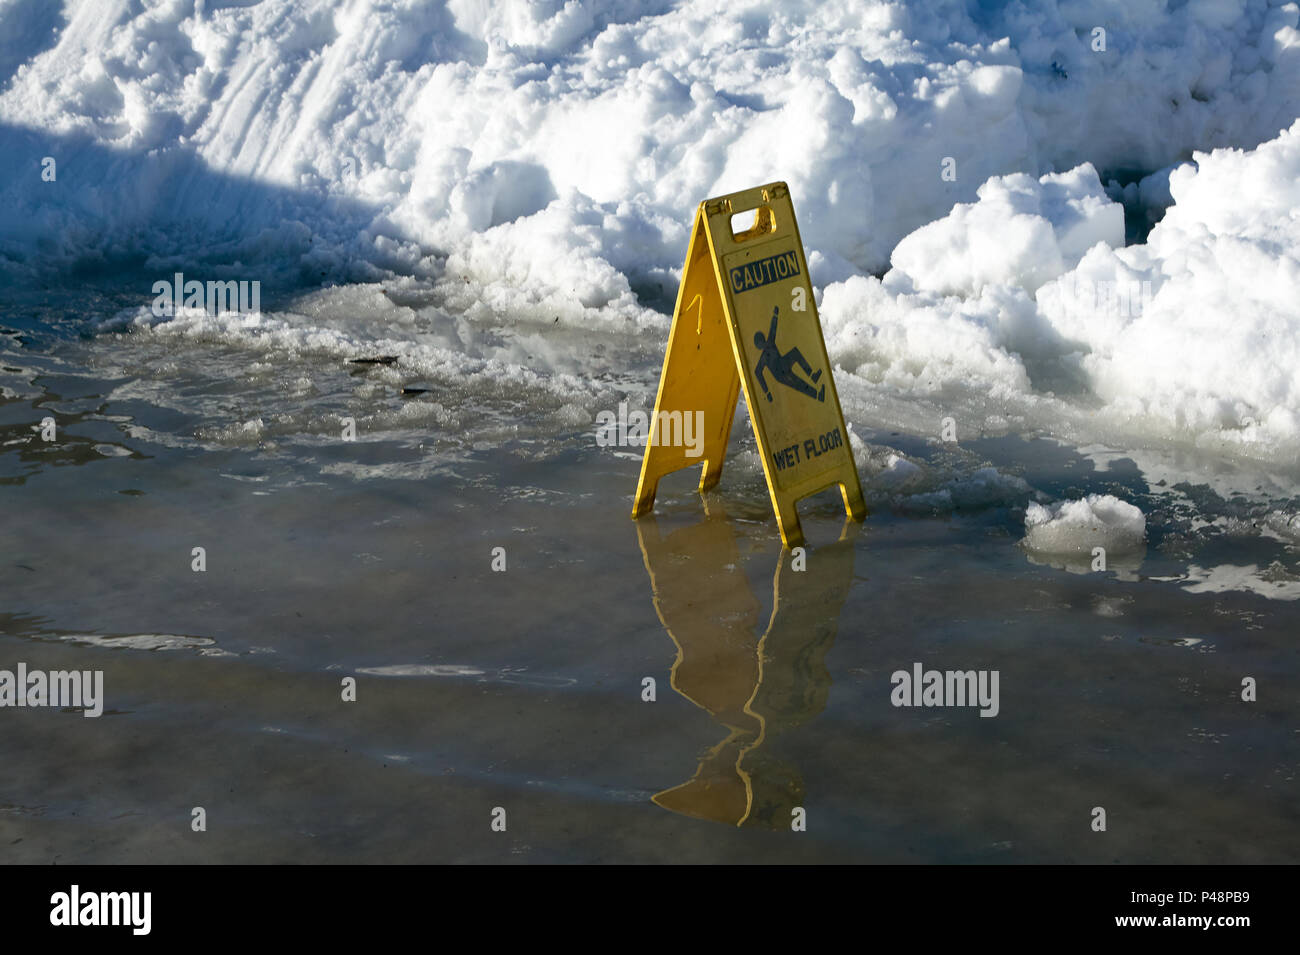 Warning sign for a slippery or icy road surface in front of a melting bank or drift of winter snow - Stock Image